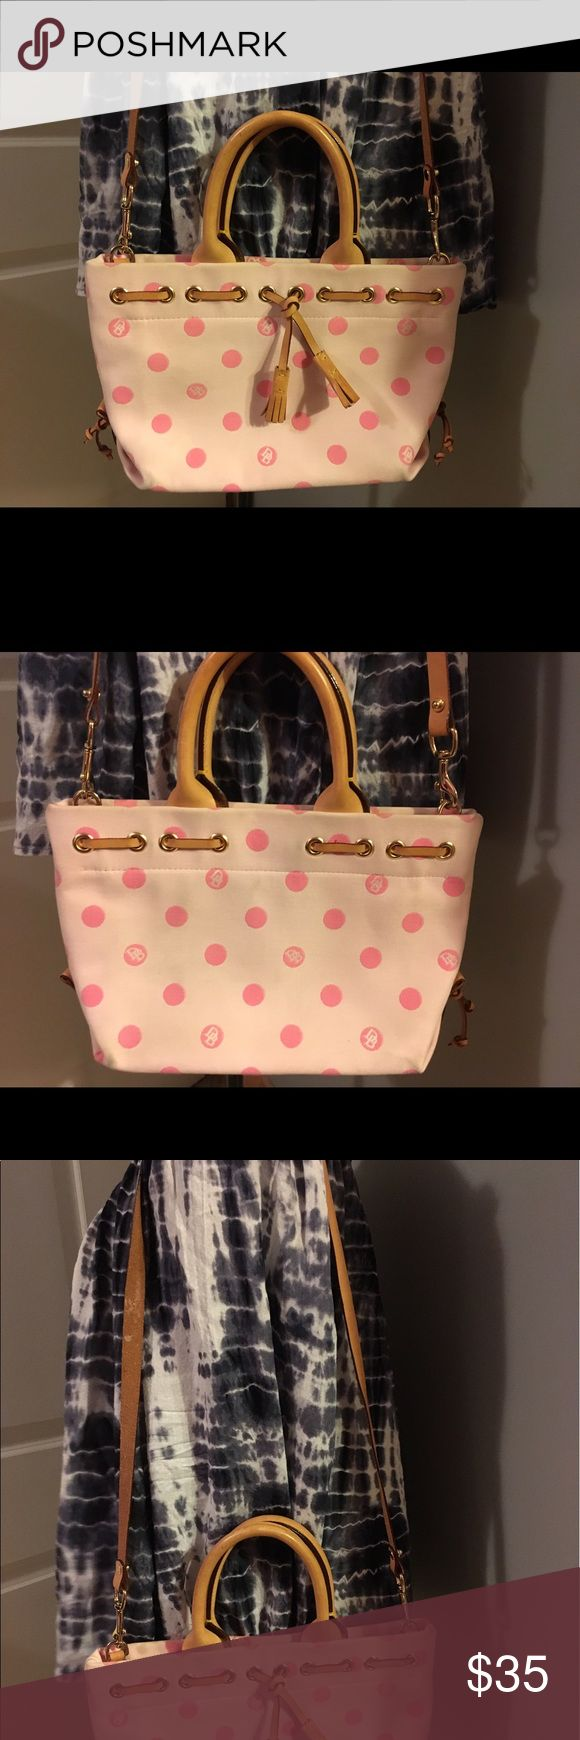 """D&B Pink Purse 👛 Cute polka dot pink bag with brown trim and accents. Gold hardware and removable strap. 12"""" wide x 8"""" wide. 20"""" shoulder drop. Some wear on bottom of bag, shown in photo, but lots of wear left! Dooney & Bourke Bags Shoulder Bags"""